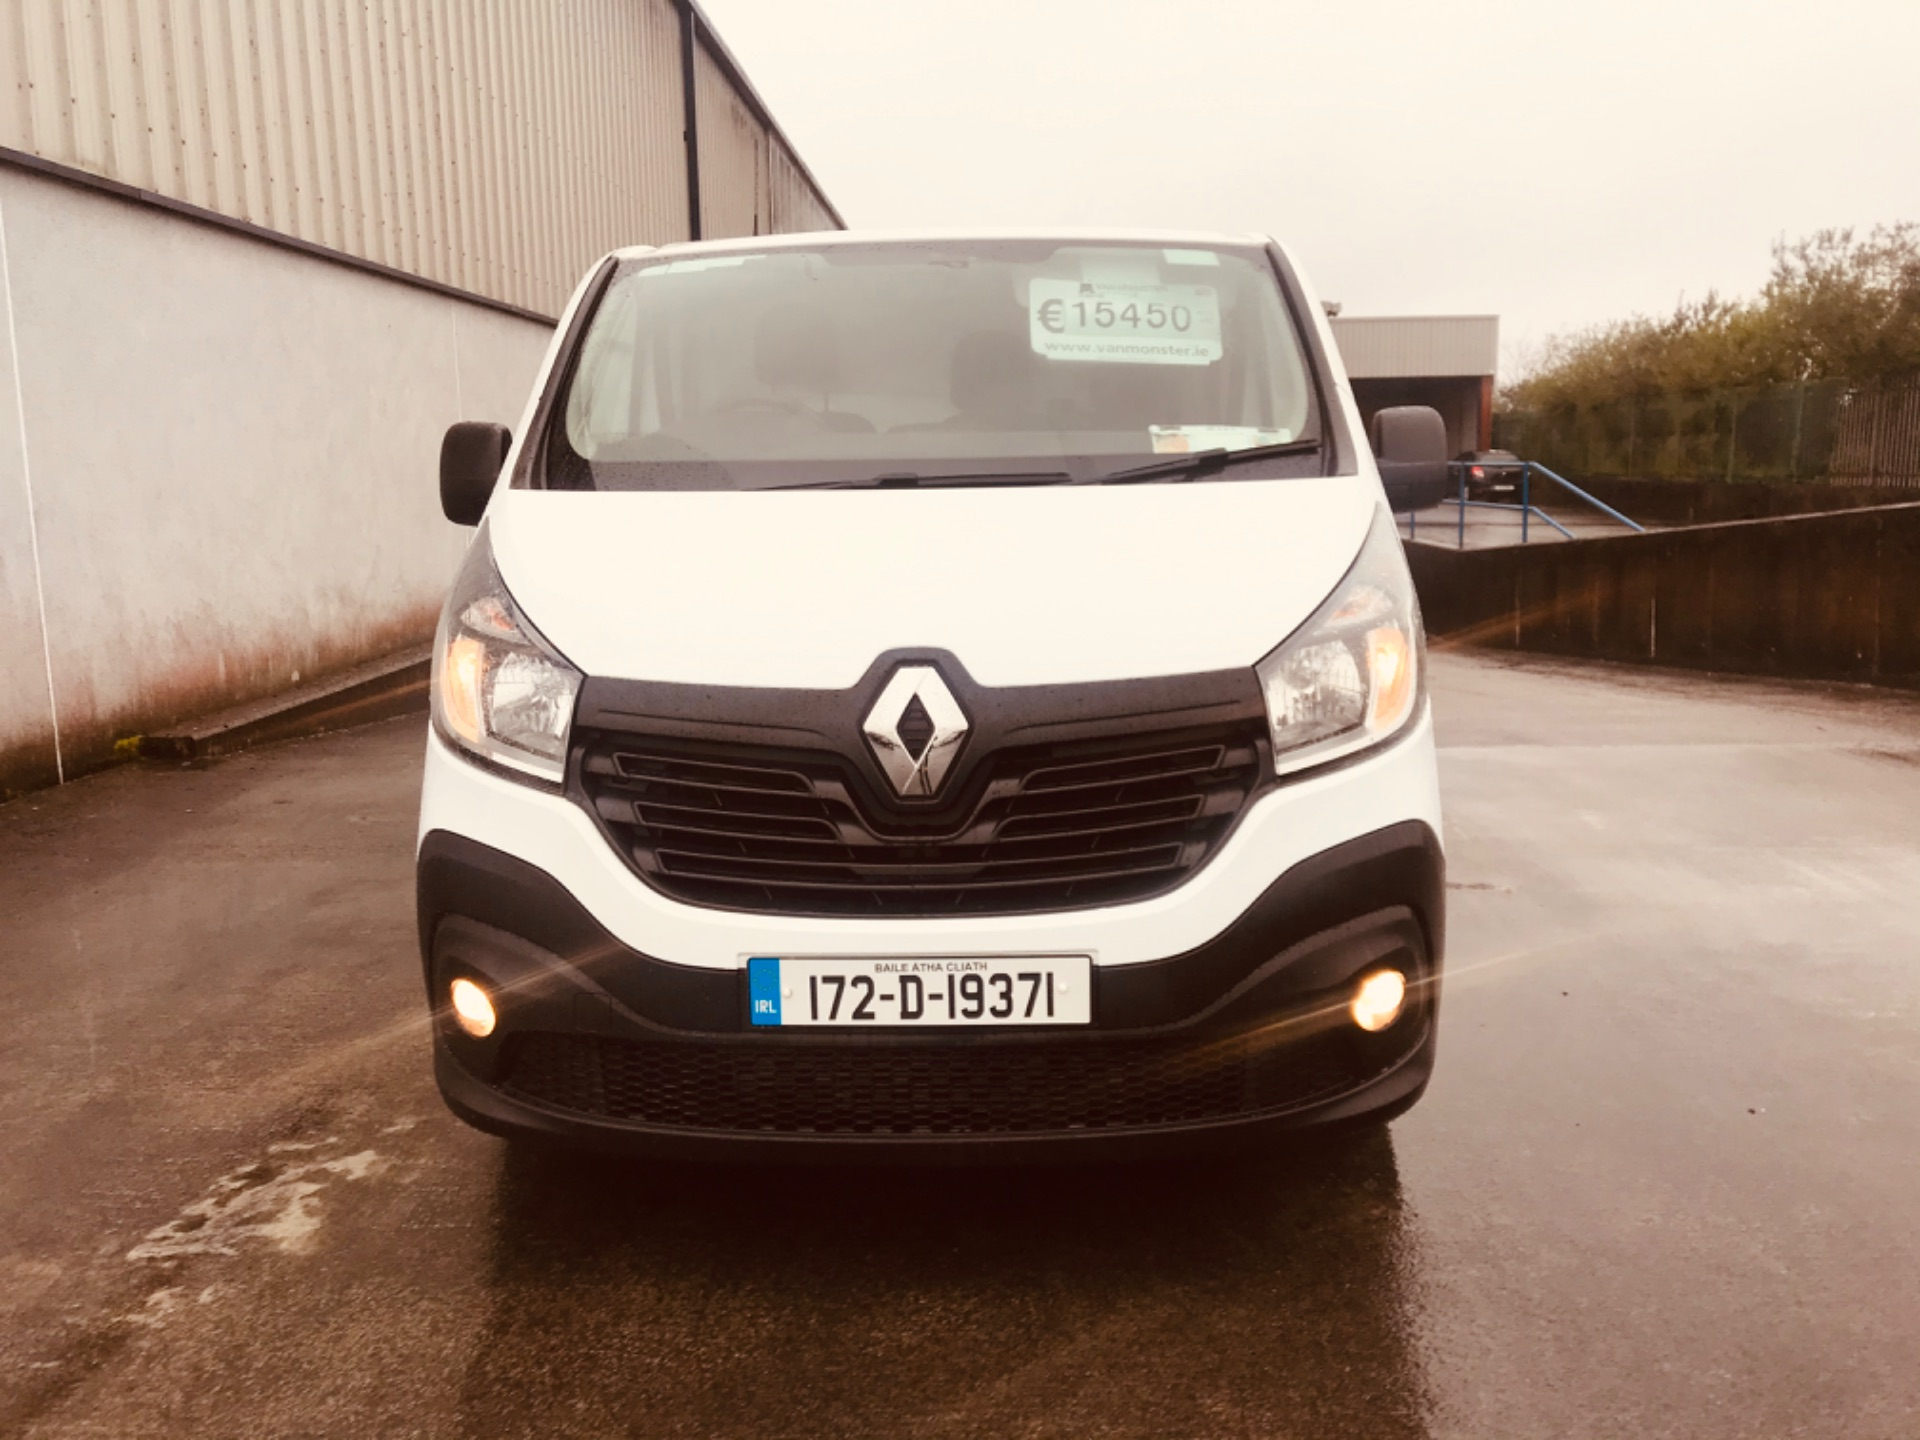 2017 Renault Trafic LL29 DCI 120 Business 3DR (172D19371) Image 2